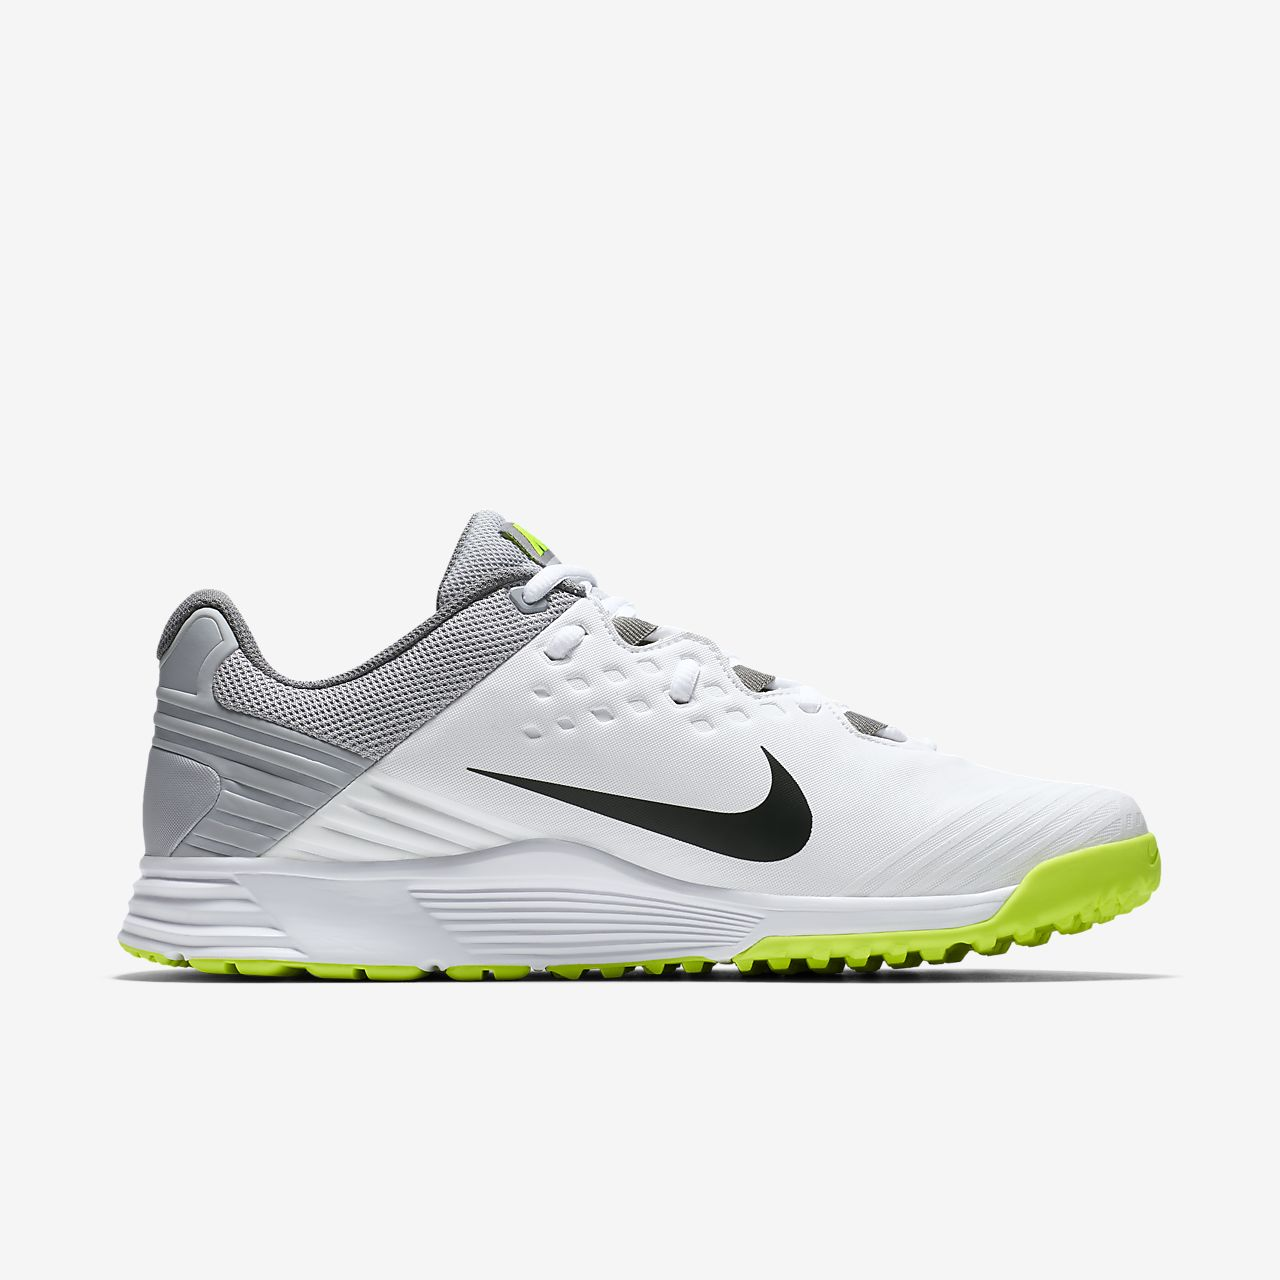 hot sale online d41ce c1e14 ... Nike Potential 3 Unisex Cricket Shoe